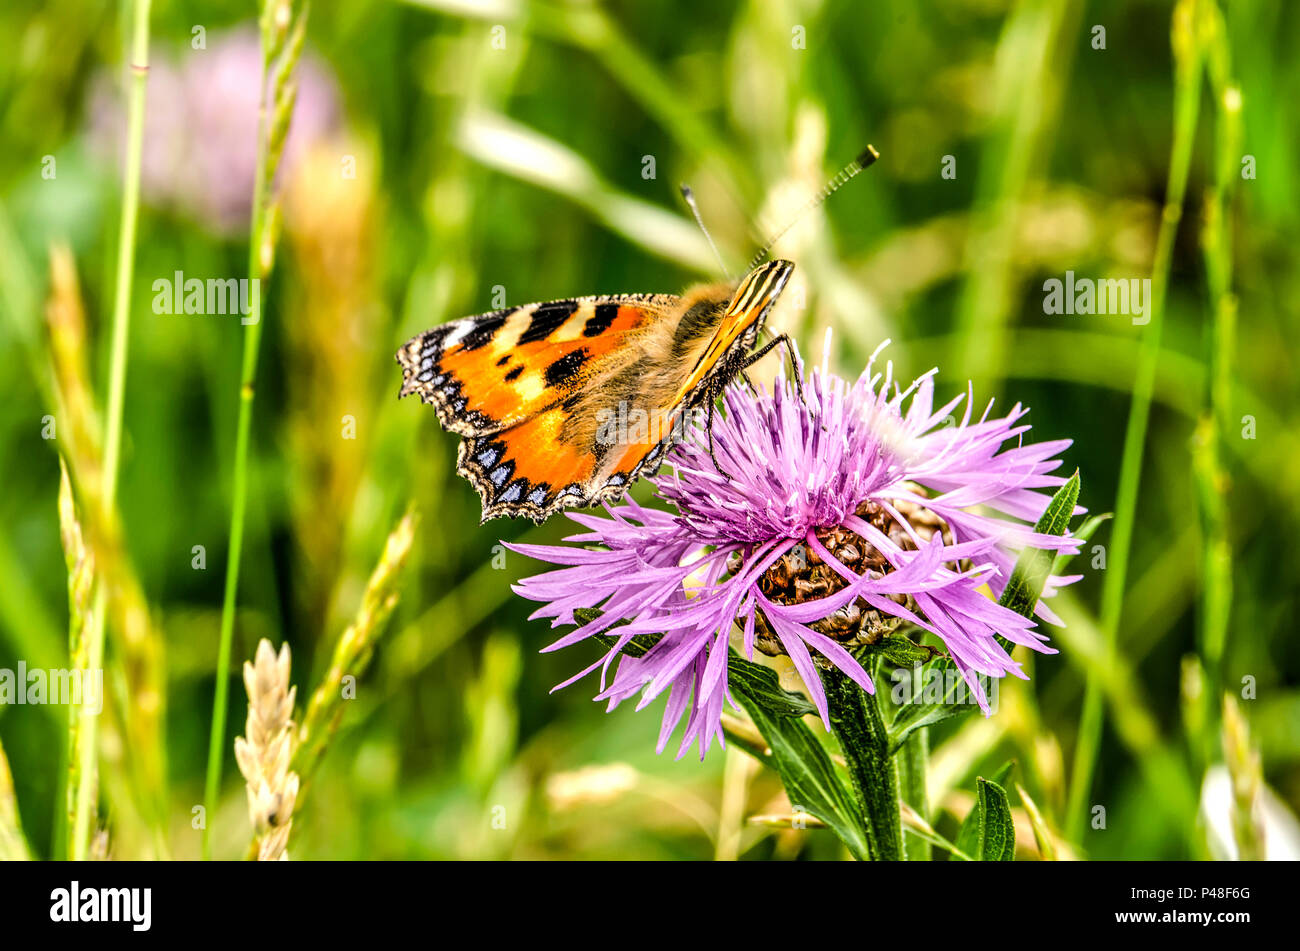 Reddish orange butterfly on a purple flower of a thistle with a blurred green background - Stock Image